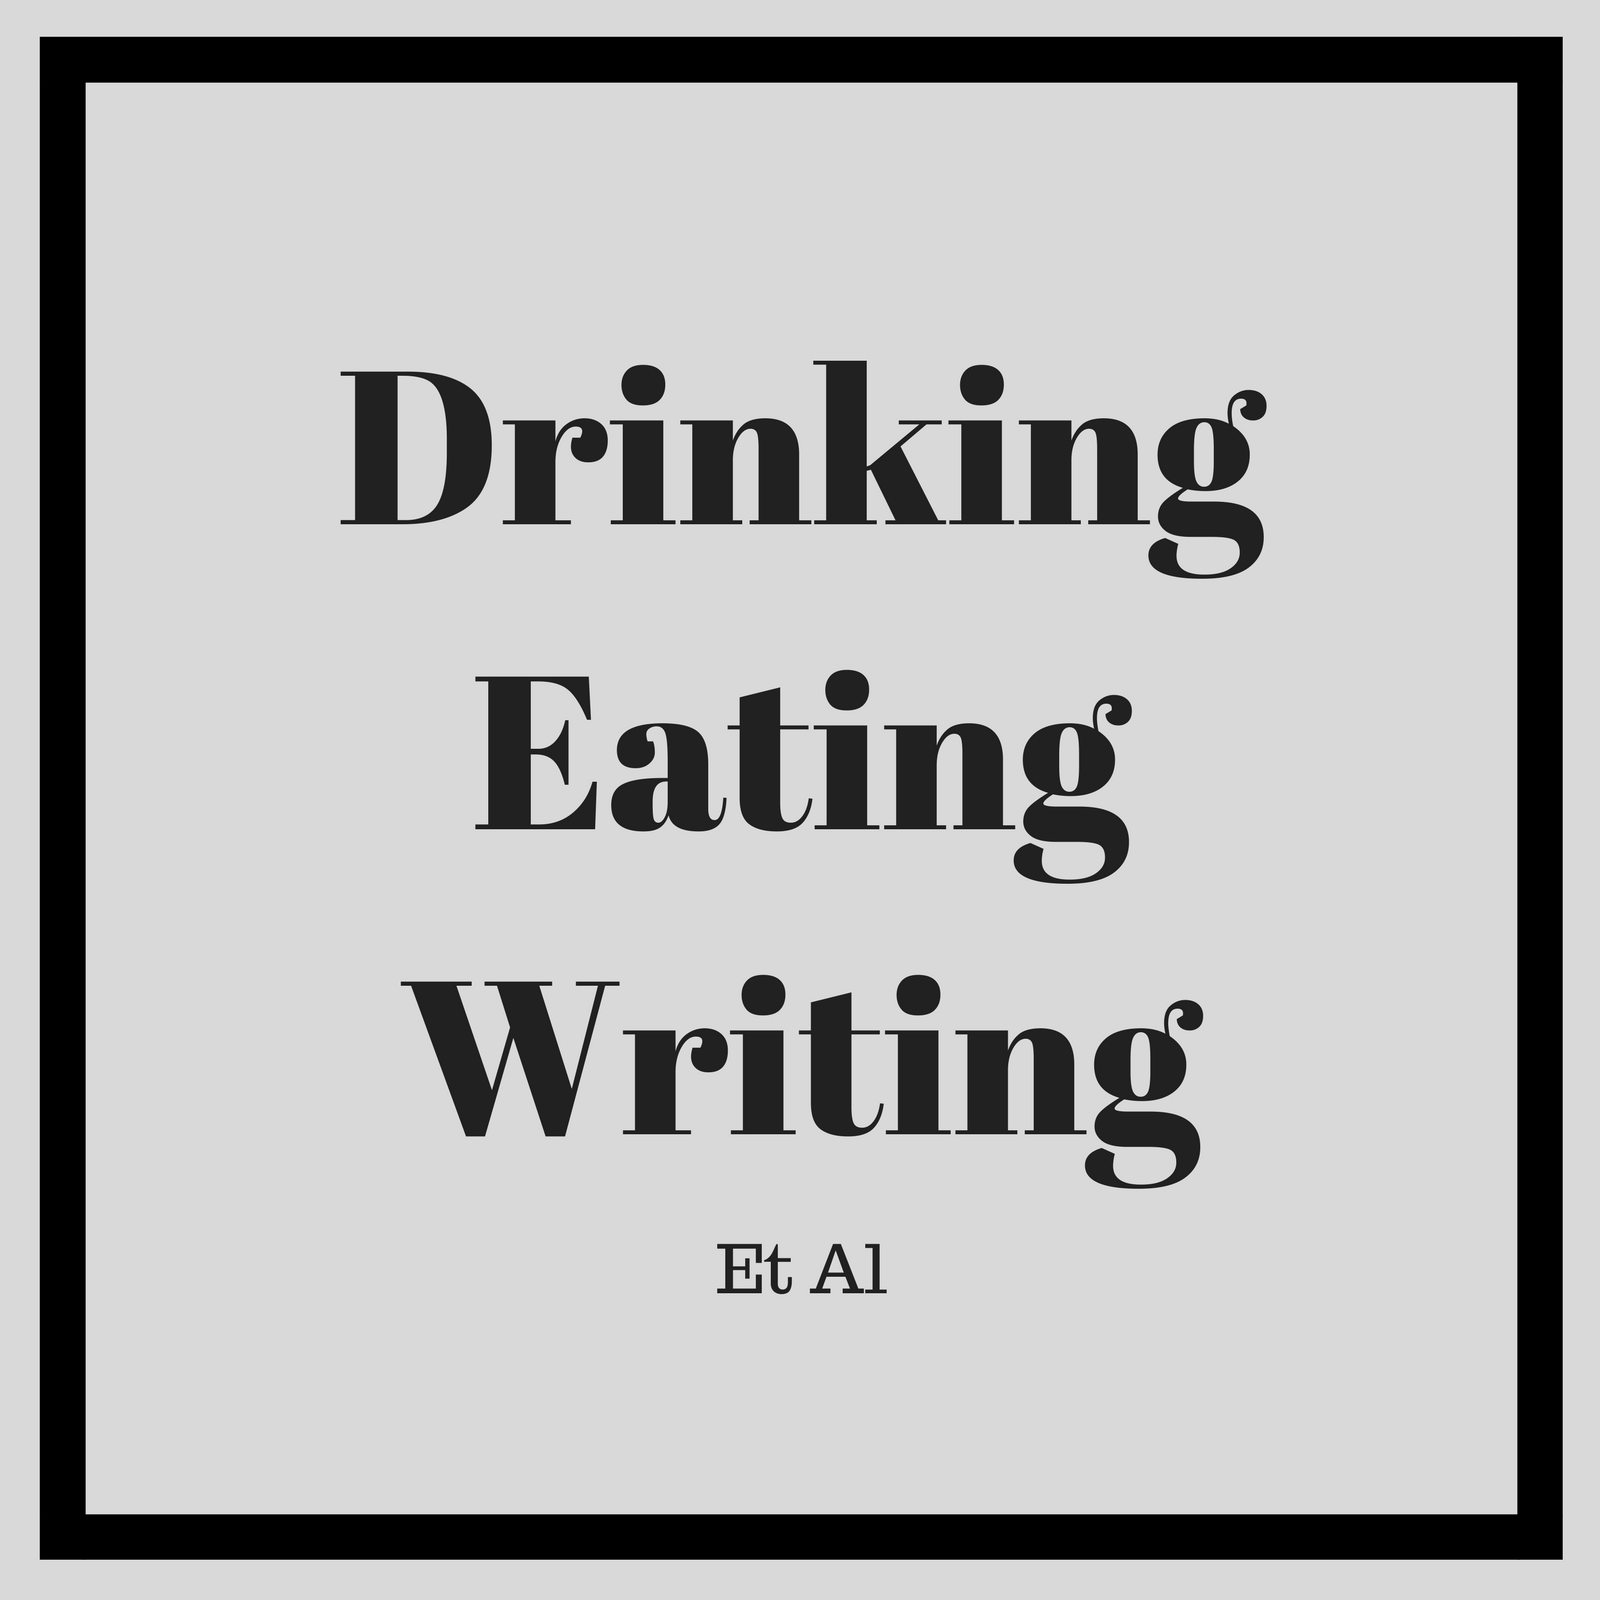 Drinking, Eating, Writing et al